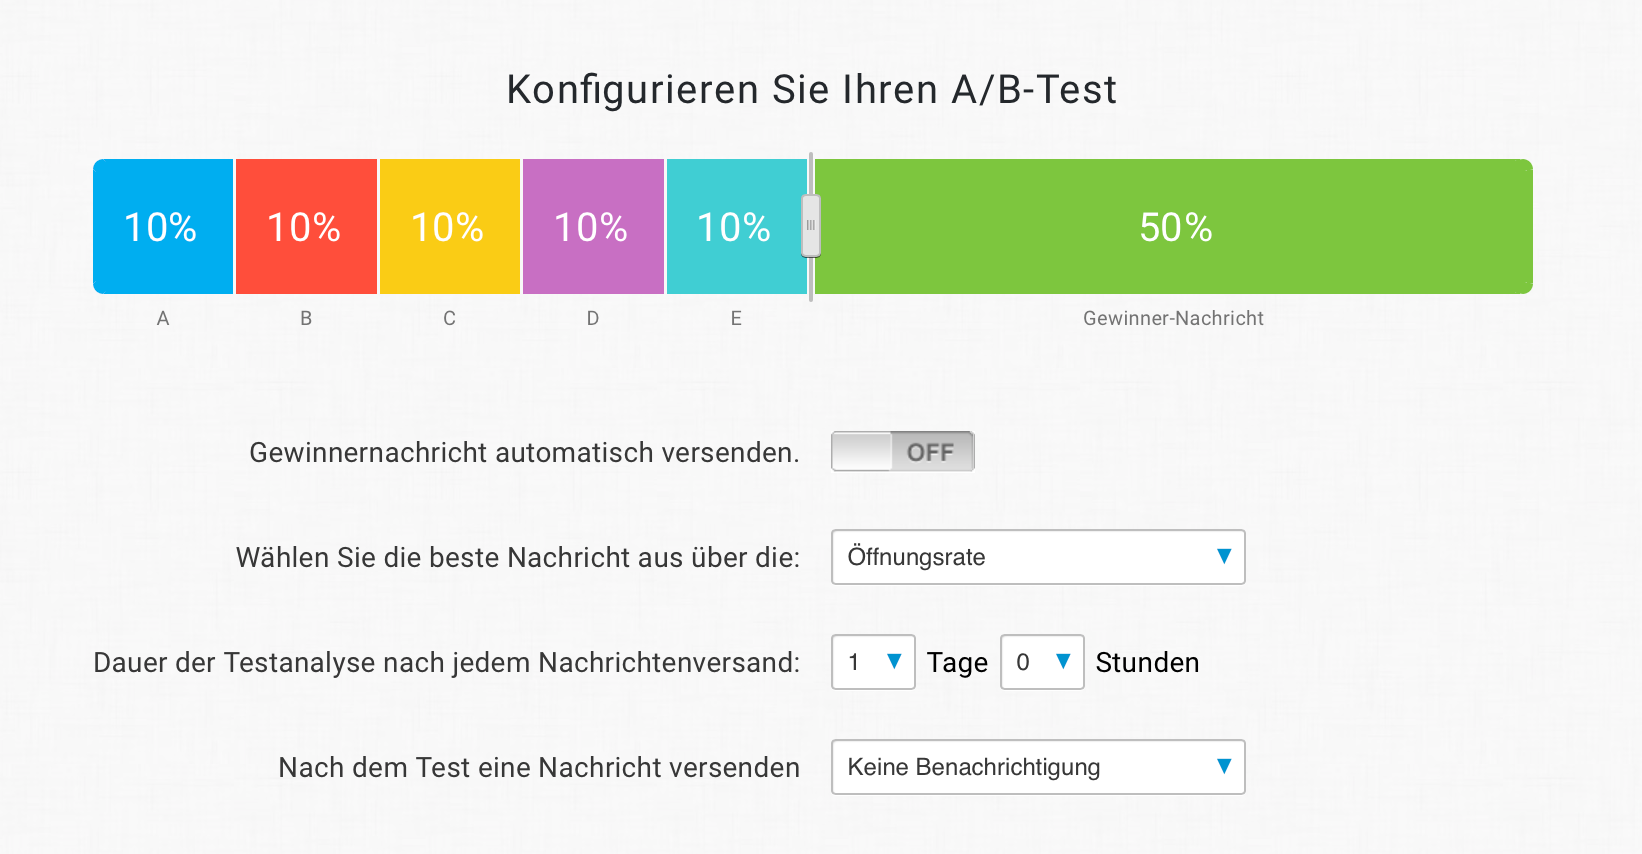 A/B-Test konfigurieren.